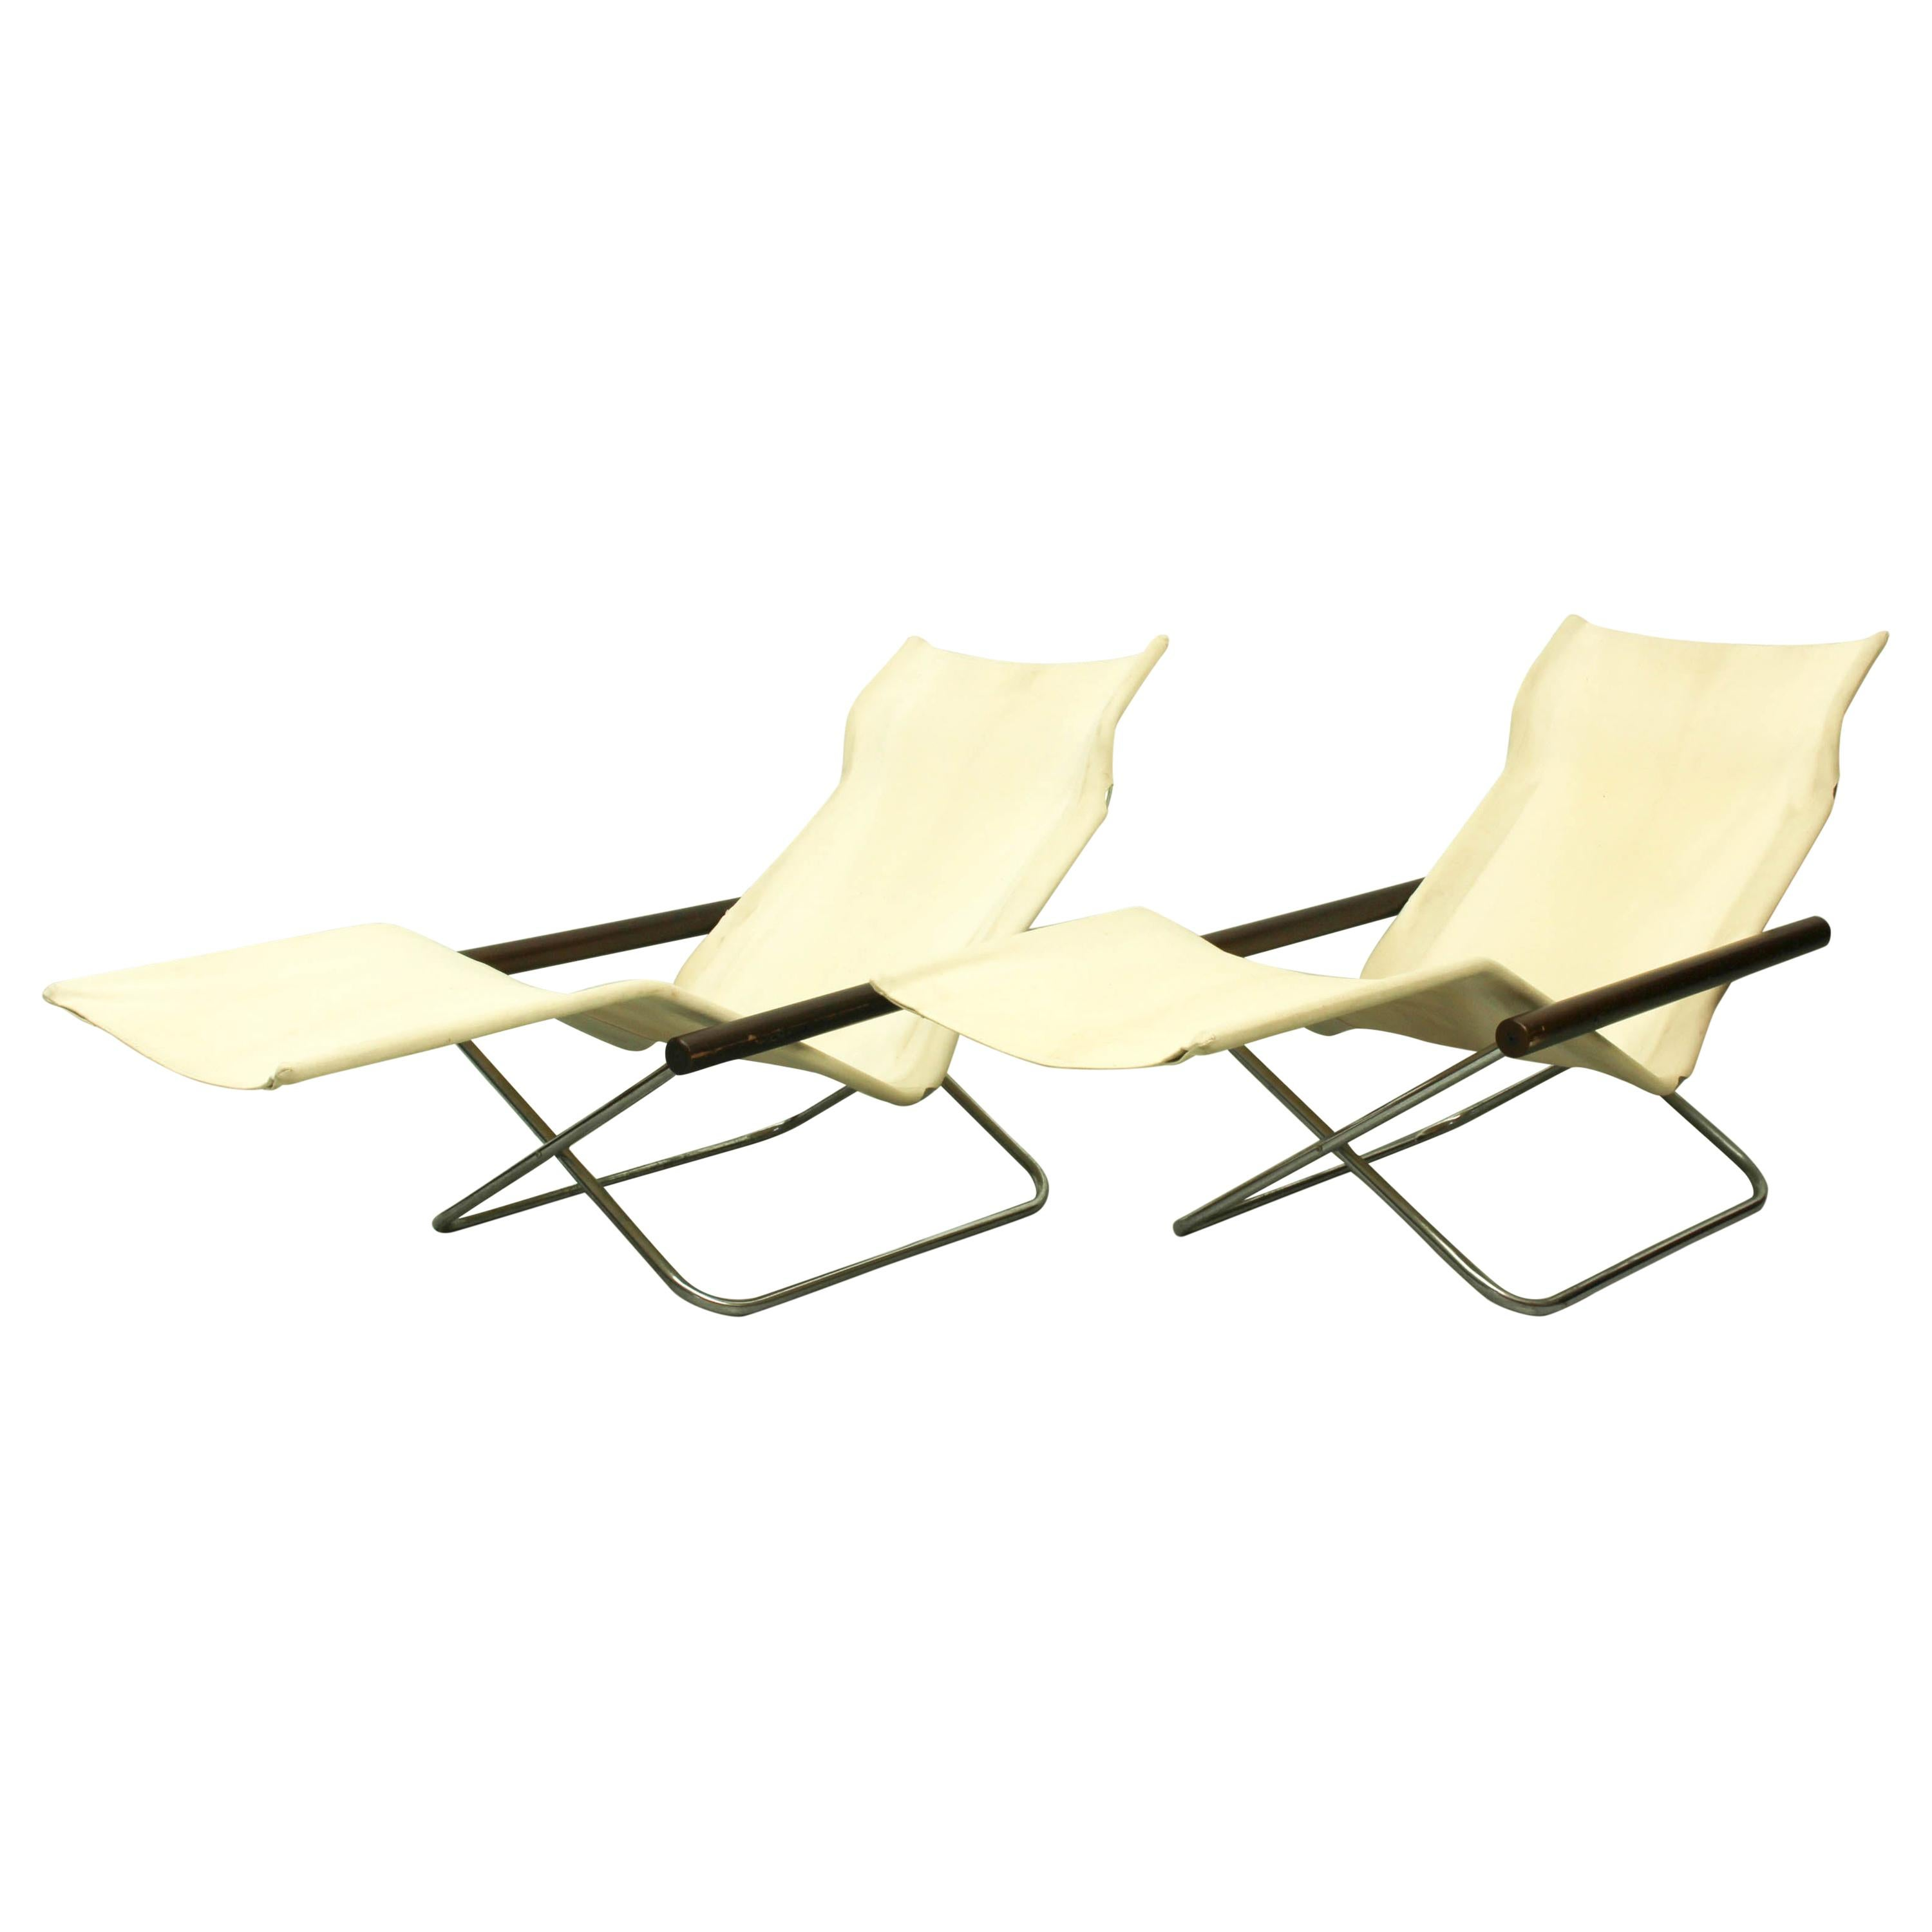 Set of 2 NY Chaise Lounge 'foldable!' by Takeshi Nii, Japan, 1950s